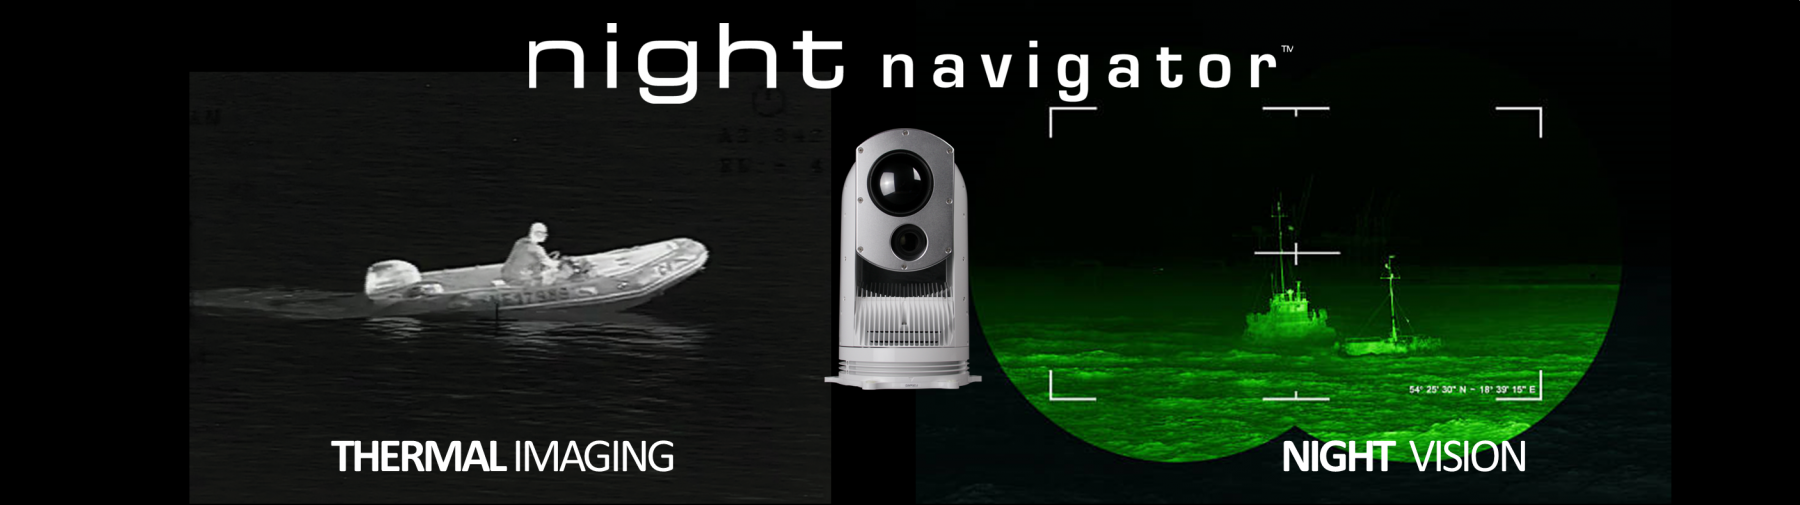 1800x505NightVision.png